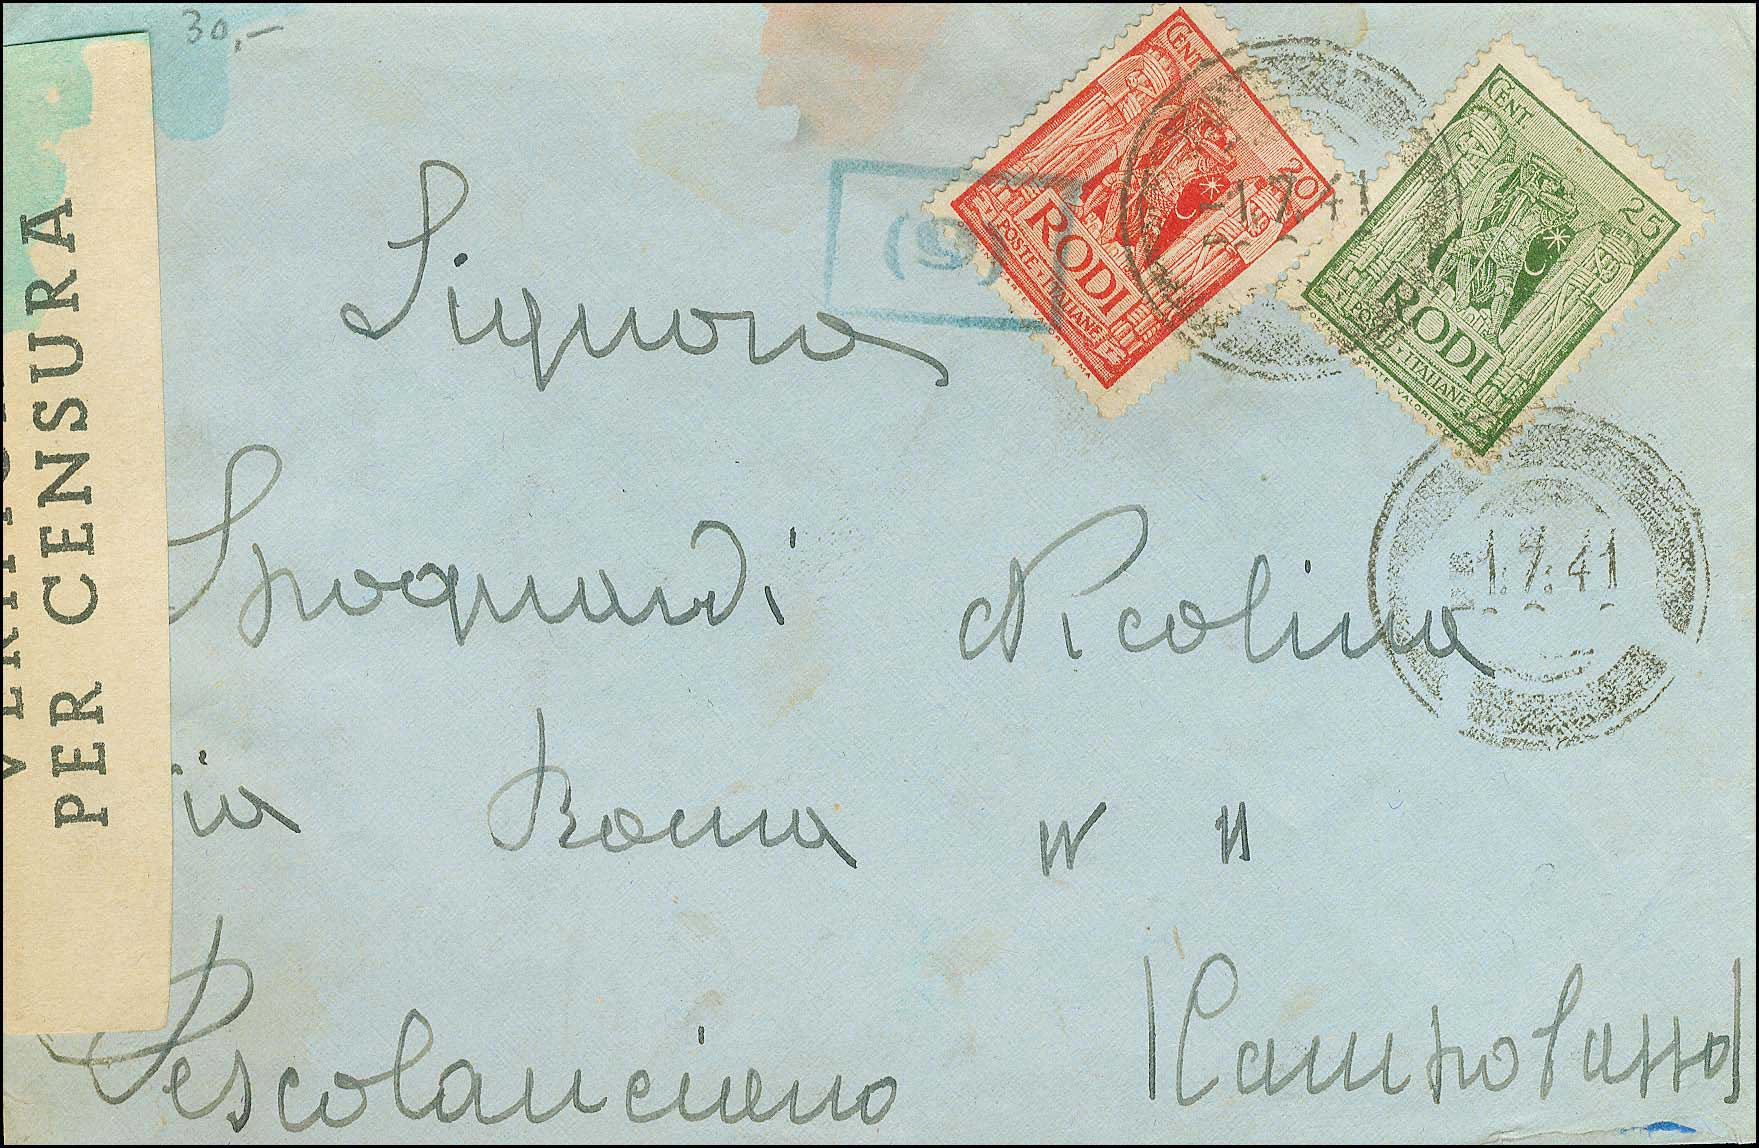 Lot 633 - -  DODECANESE italian dodecanese - italian post office issues -  A. Karamitsos Postal & Live Internet Auction 678 General Philatelic Auction